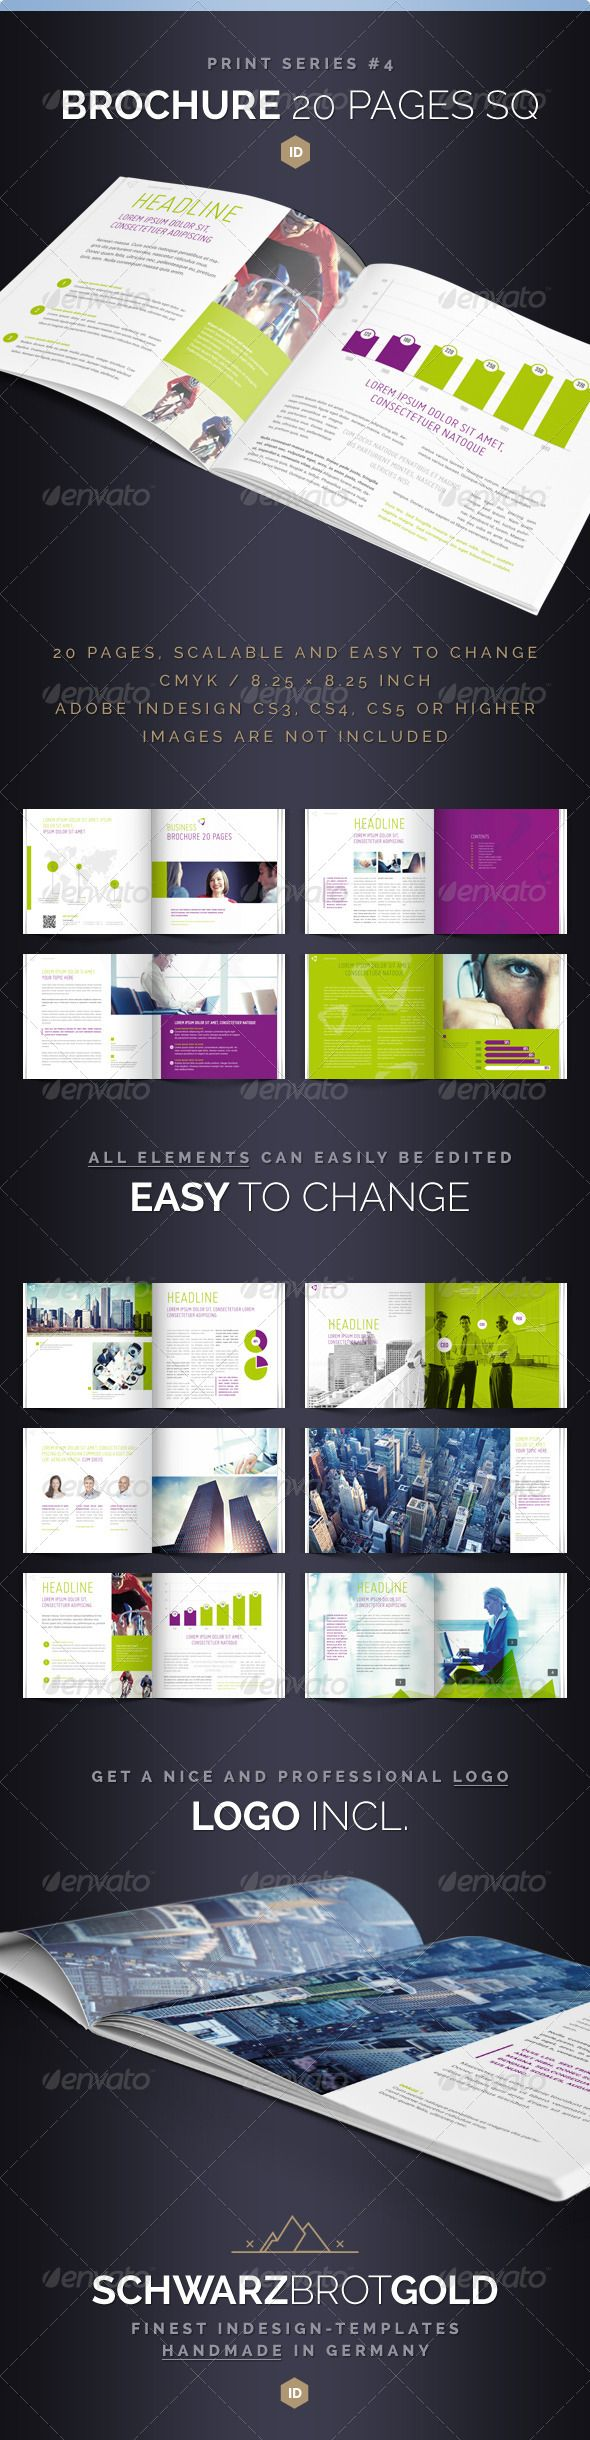 Best Informational Brochure Images On Pinterest Print - 4 page brochure template